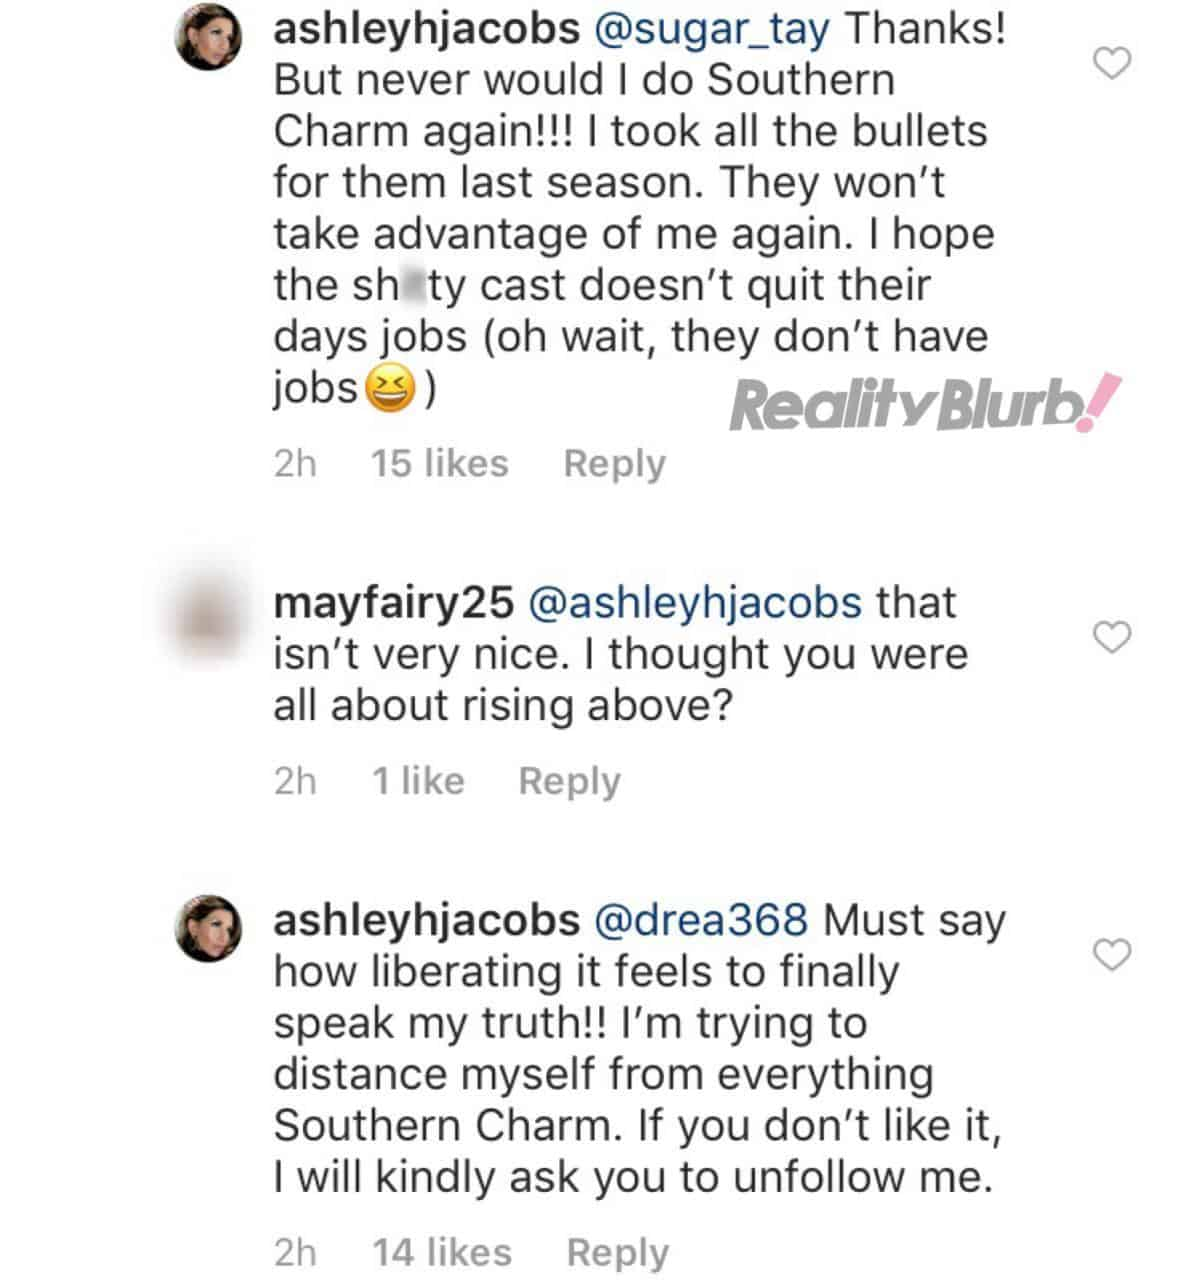 Ashley slams Southern Charm cast